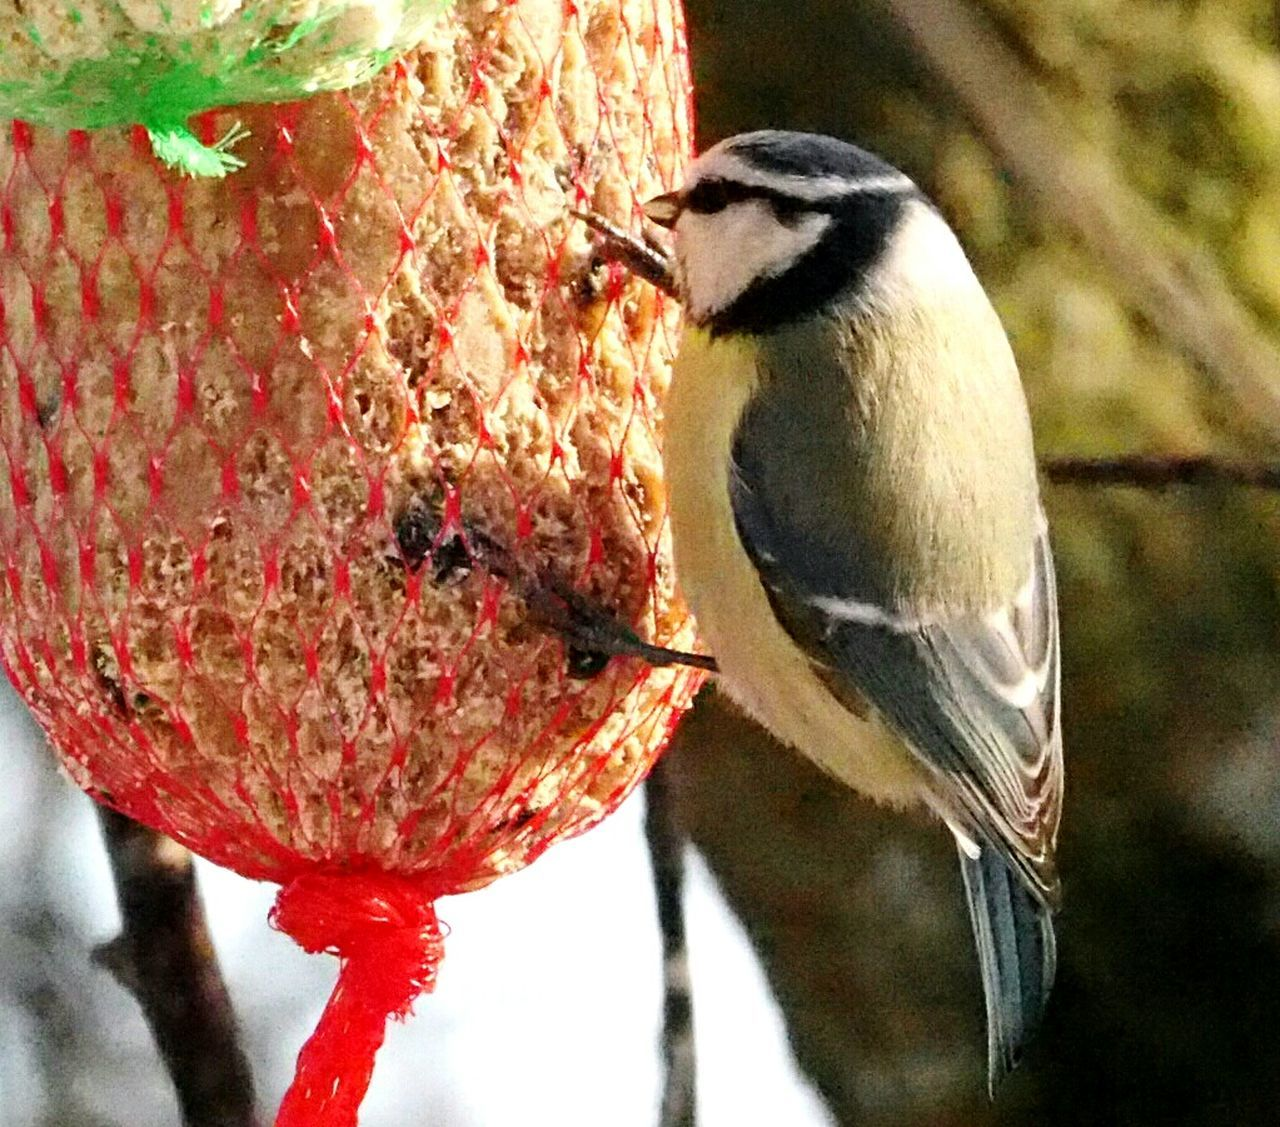 Bird Animal Themes Perching Animals In The Wild Animal Wildlife Nature One Animal Tree Outdoors Branch Close-up Food Beauty In Nature Birds Eating Bird Eating Bird Feeder The Power Of Nature Winter Nature Outside Nature Animals In The Wild Beauty In Nature